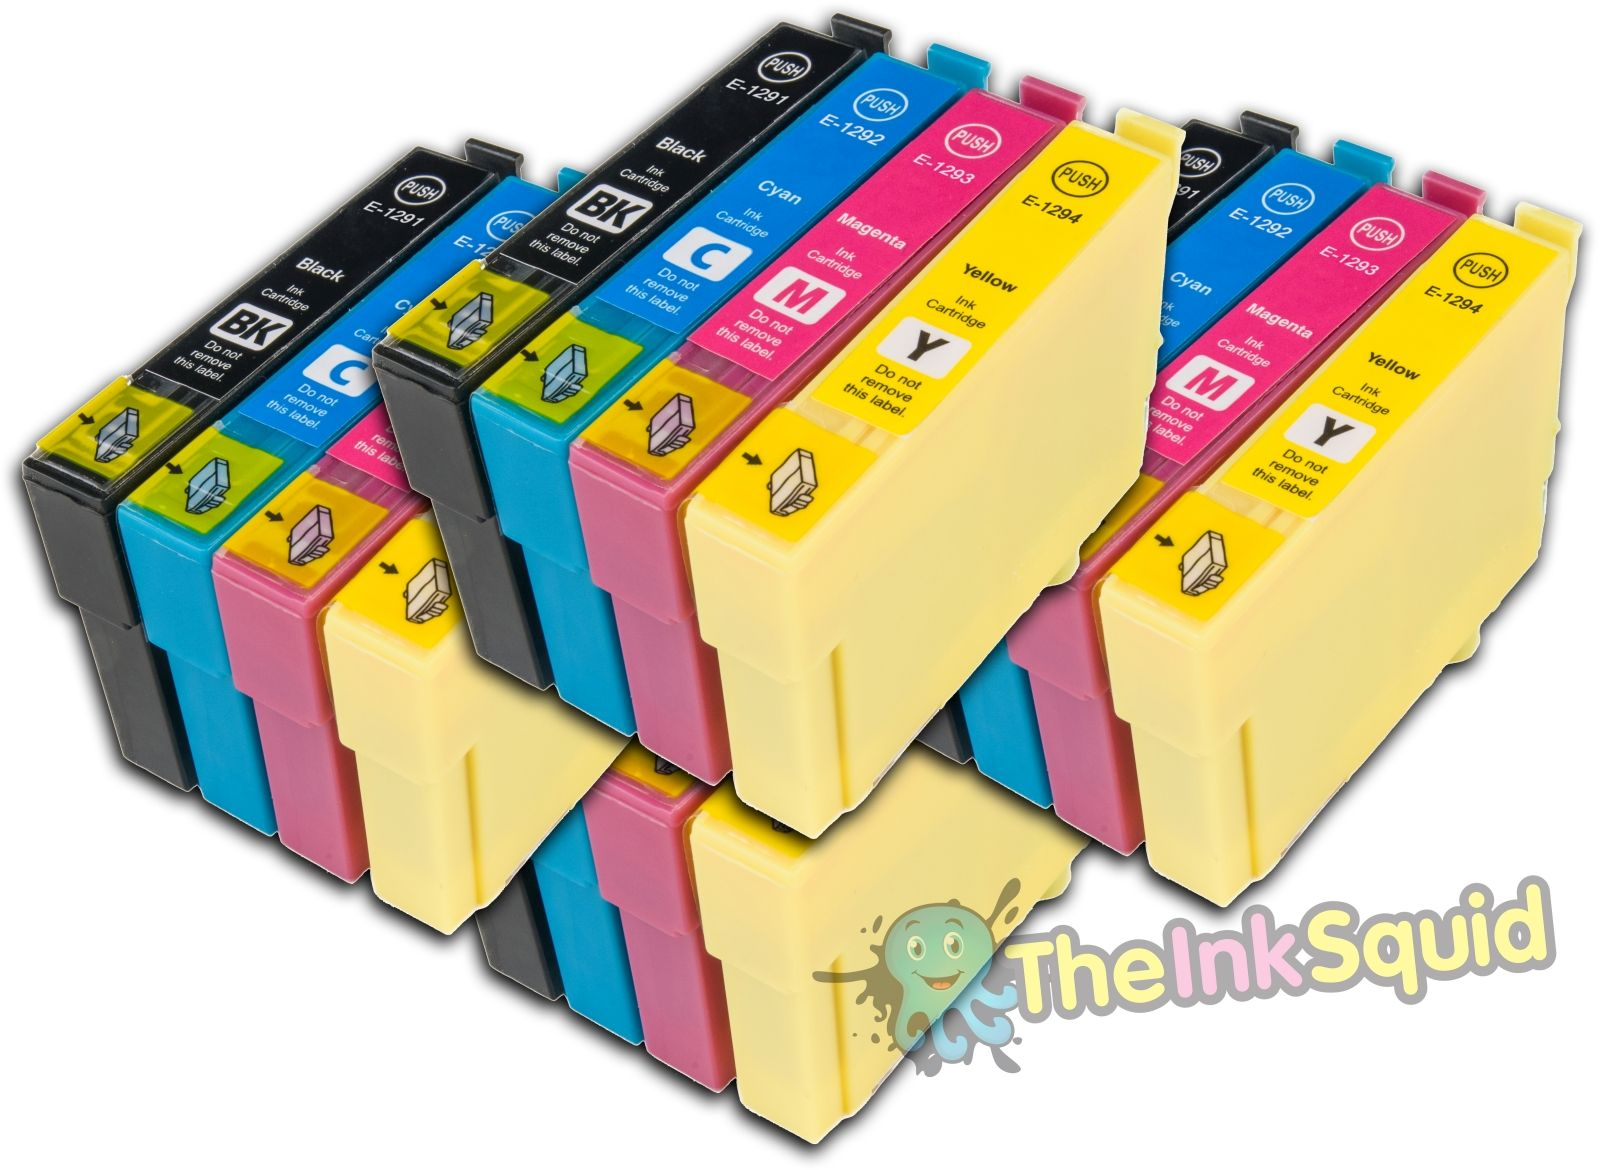 16 t1291 4 t1295 non oem apple ink cartridges fits epson. Black Bedroom Furniture Sets. Home Design Ideas